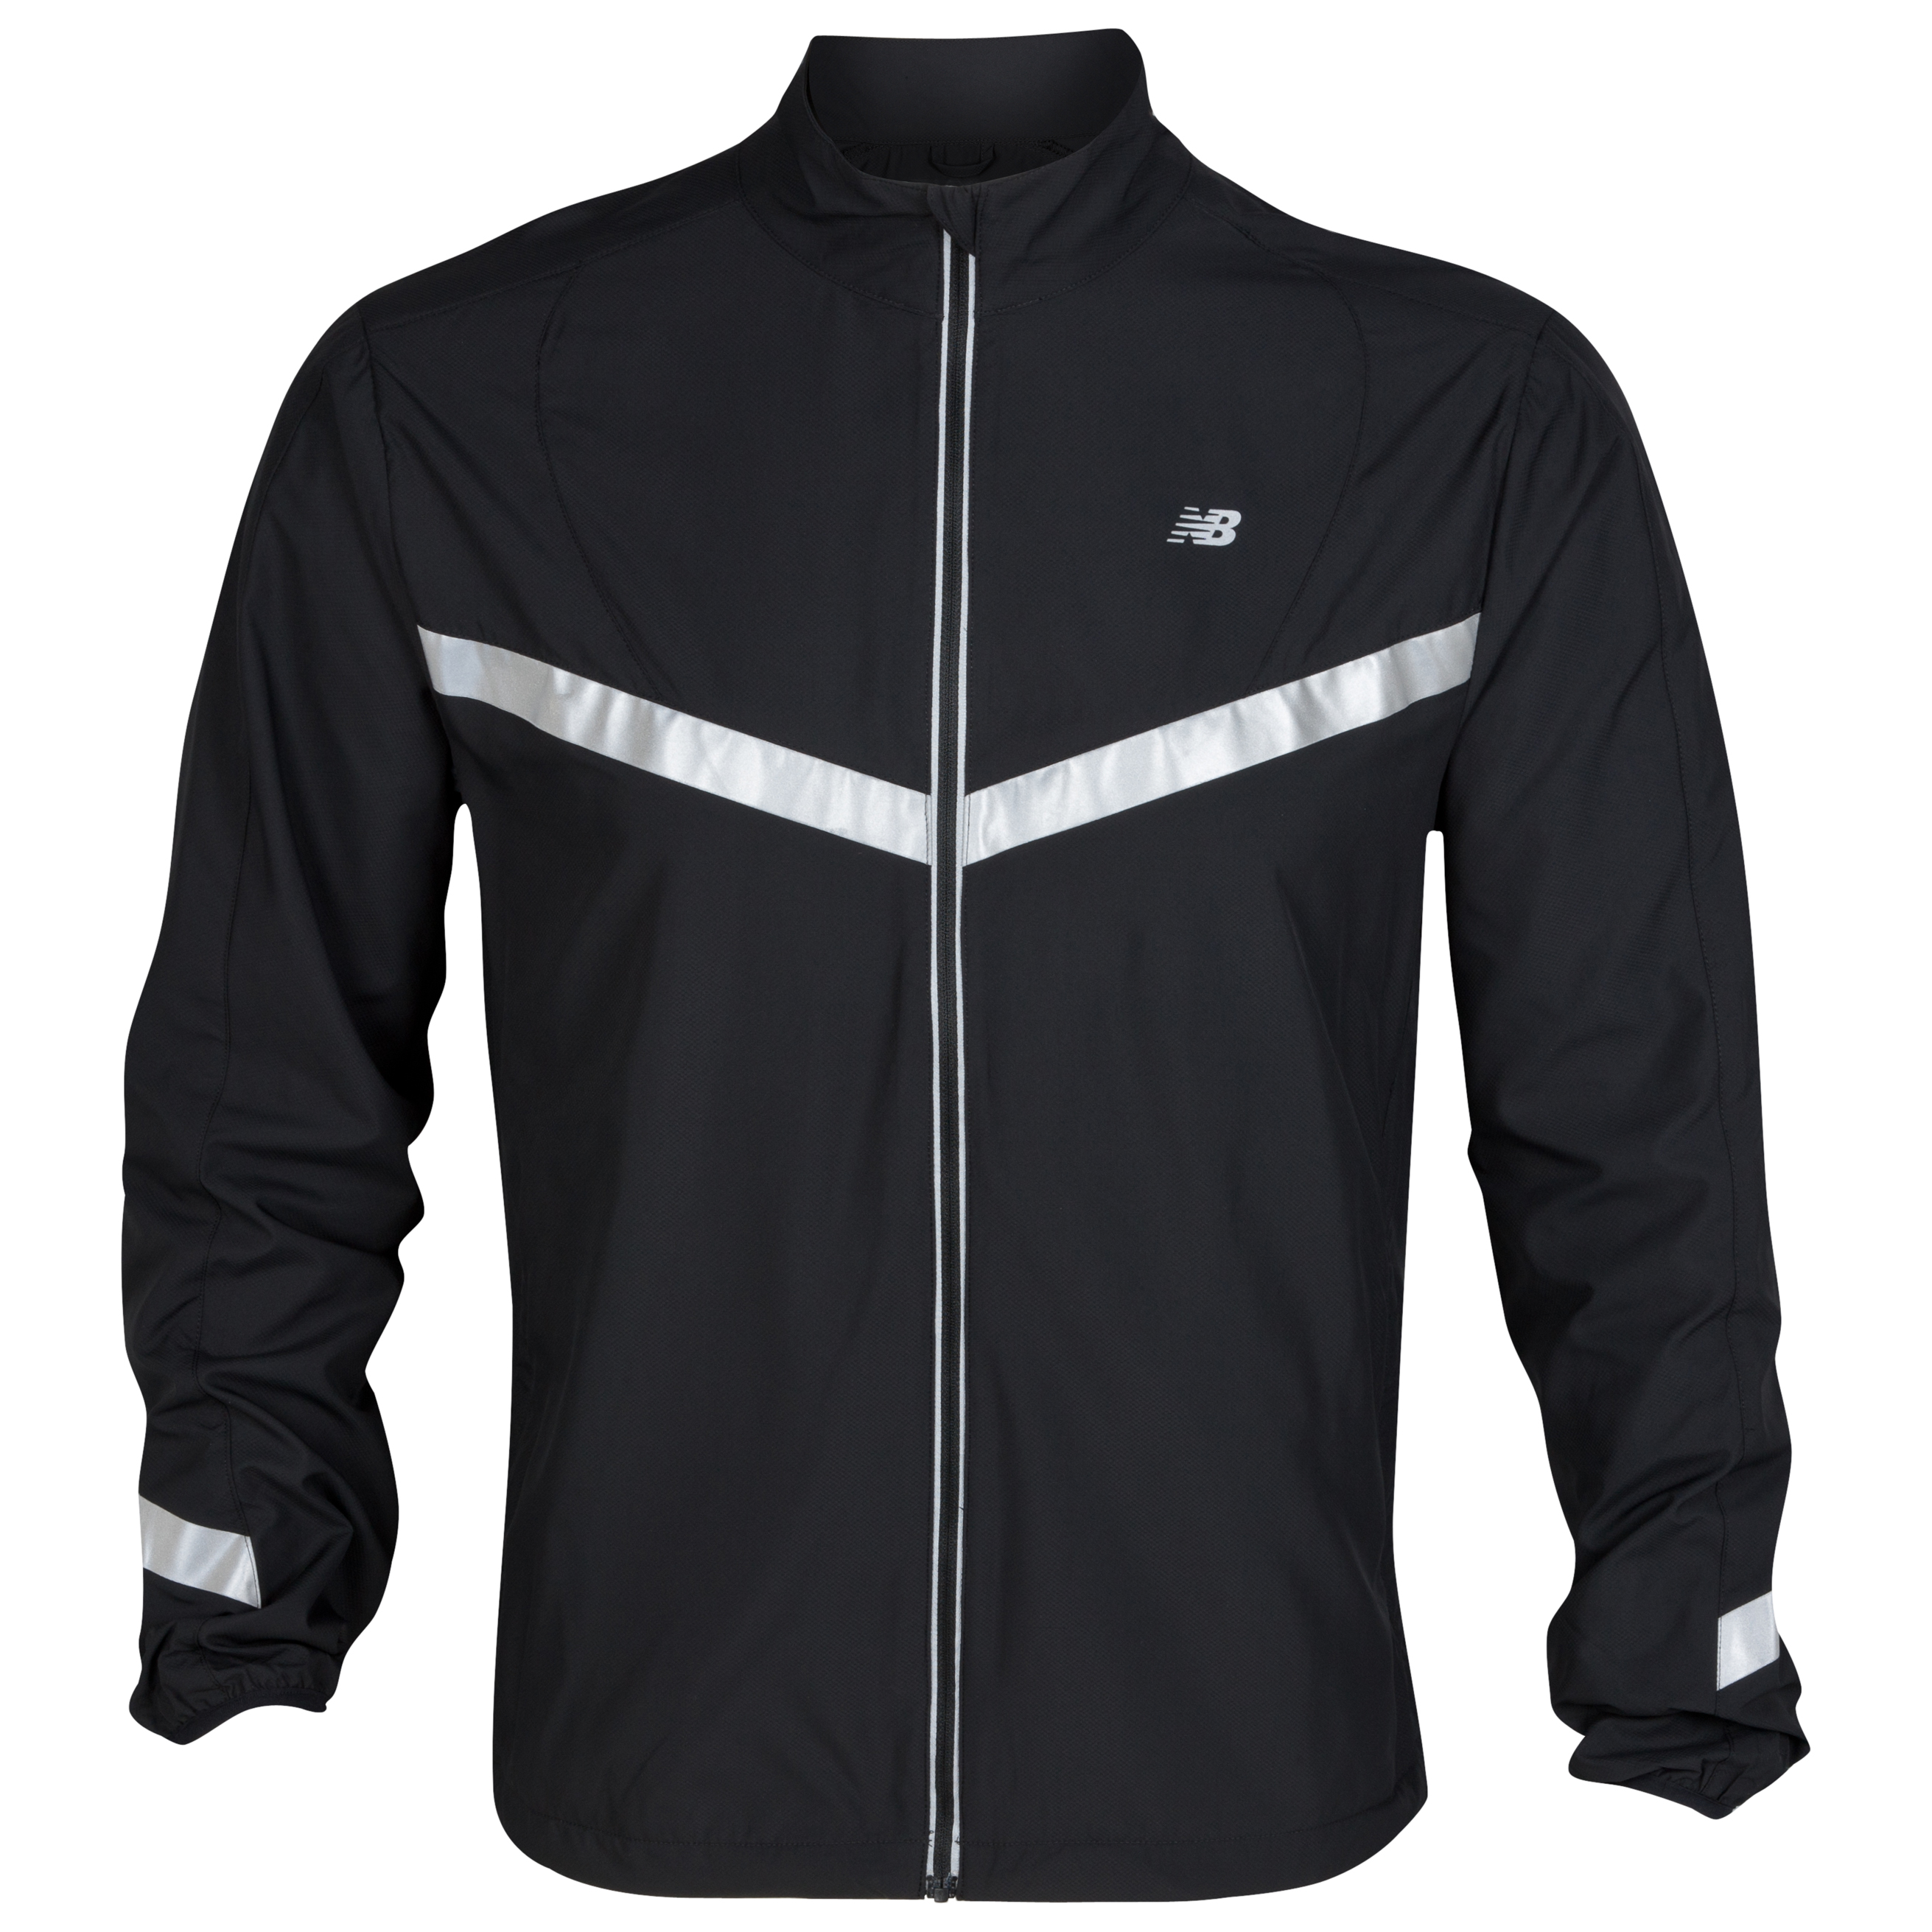 New Balance 360 Jacket - Black